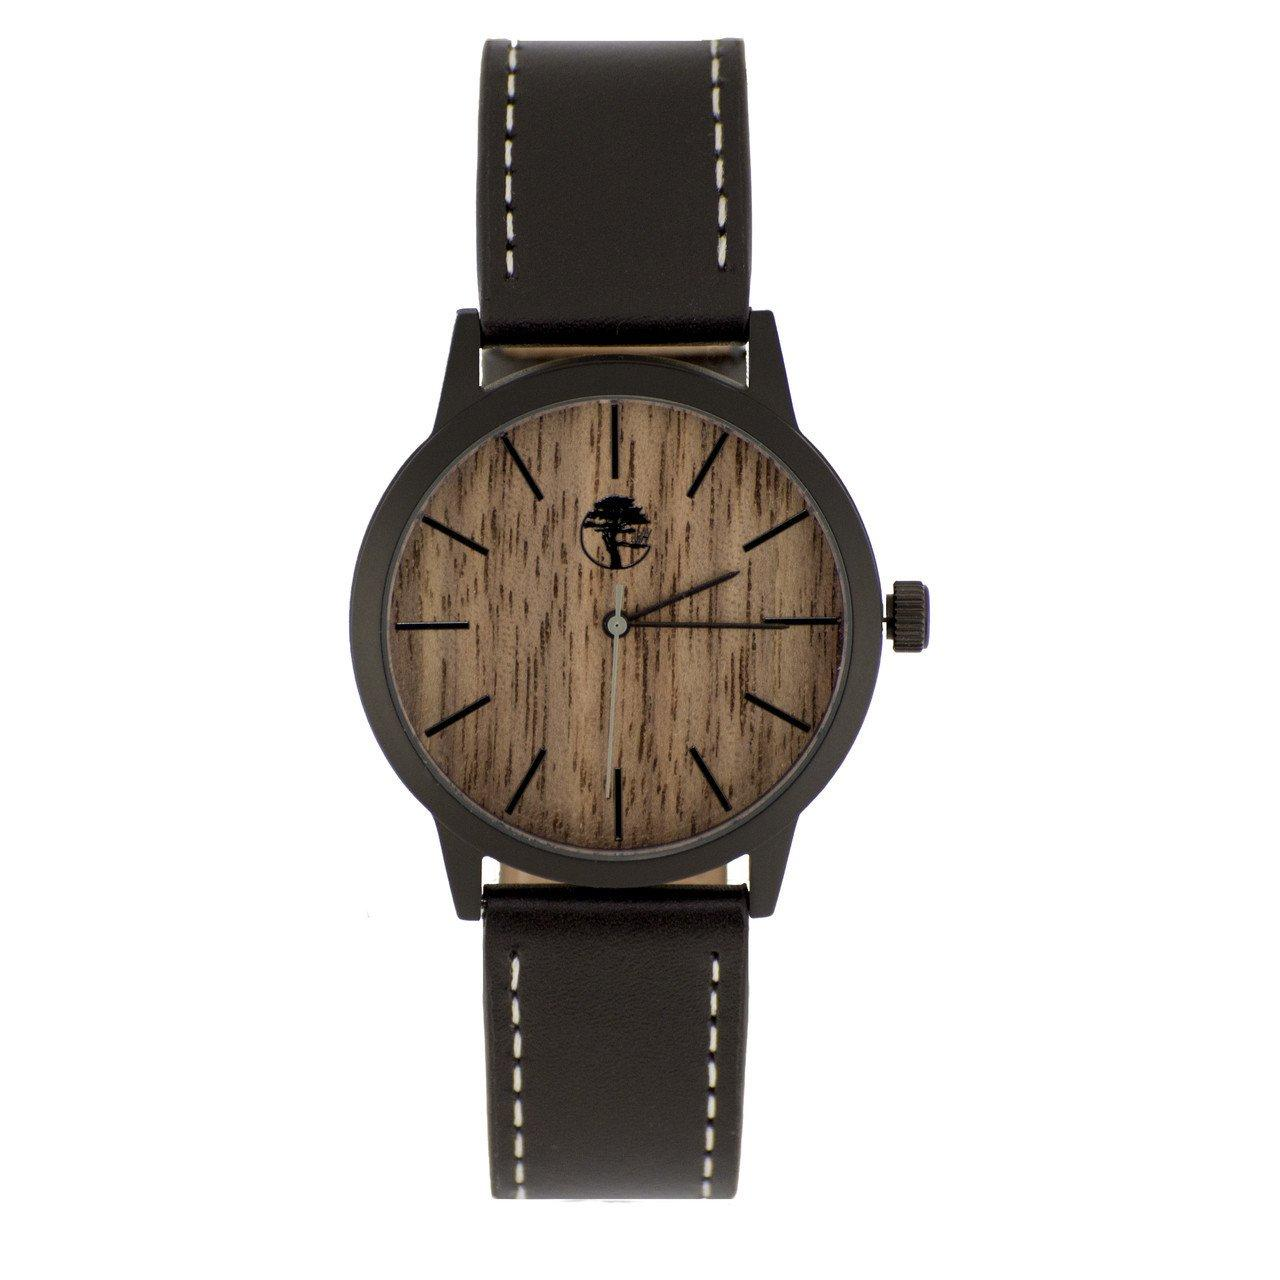 Men's Waterproof Walnut Wood Watch, Black Steel Case, Quartz Movement, Genuine Leather Strap and Gift Box